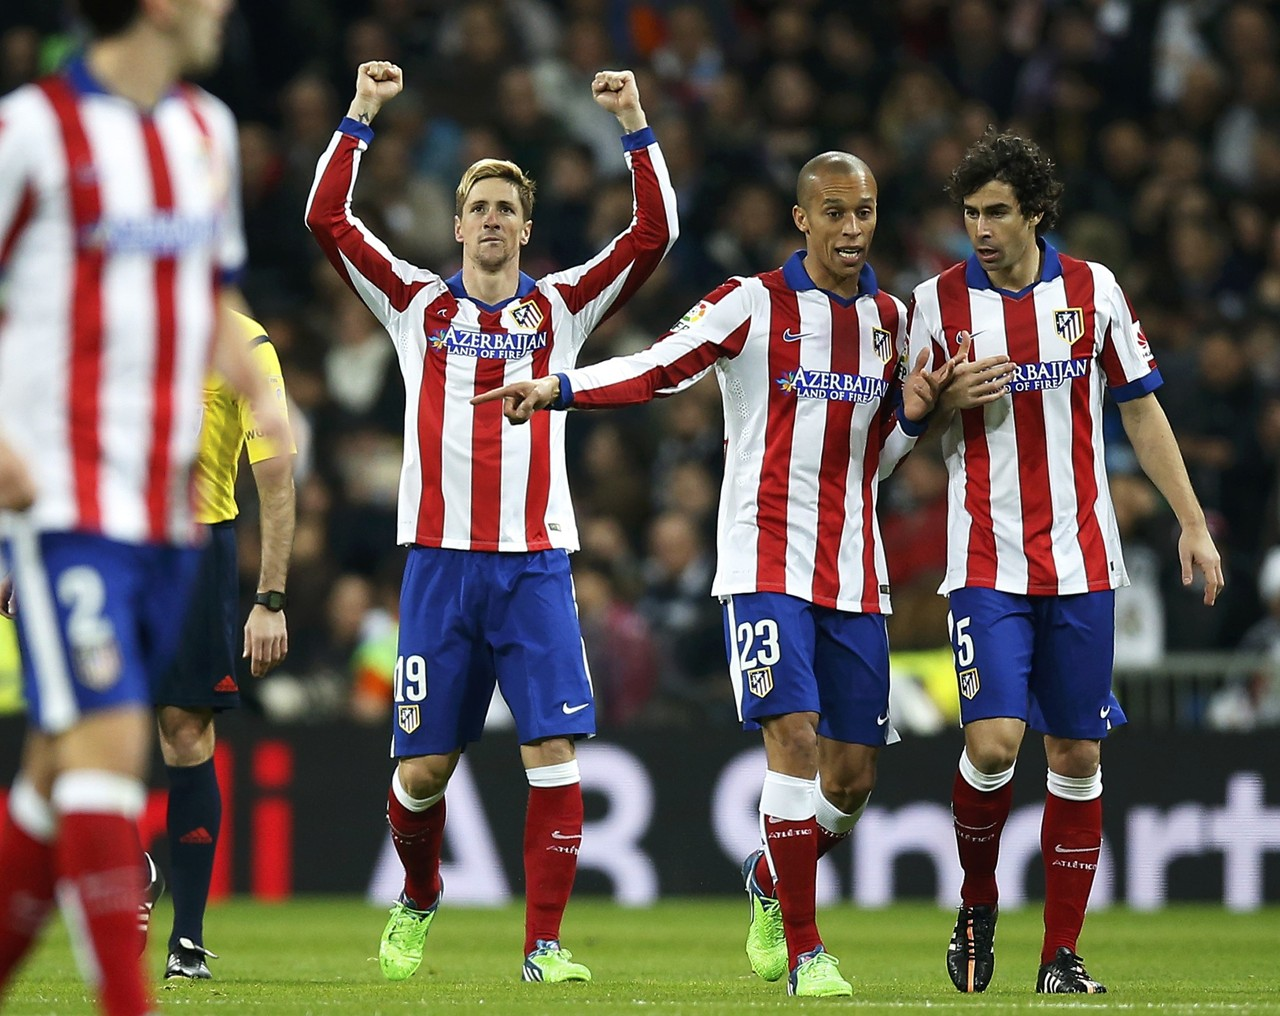 Fernando Torres scores first goal for Atletico Madrid since 2007